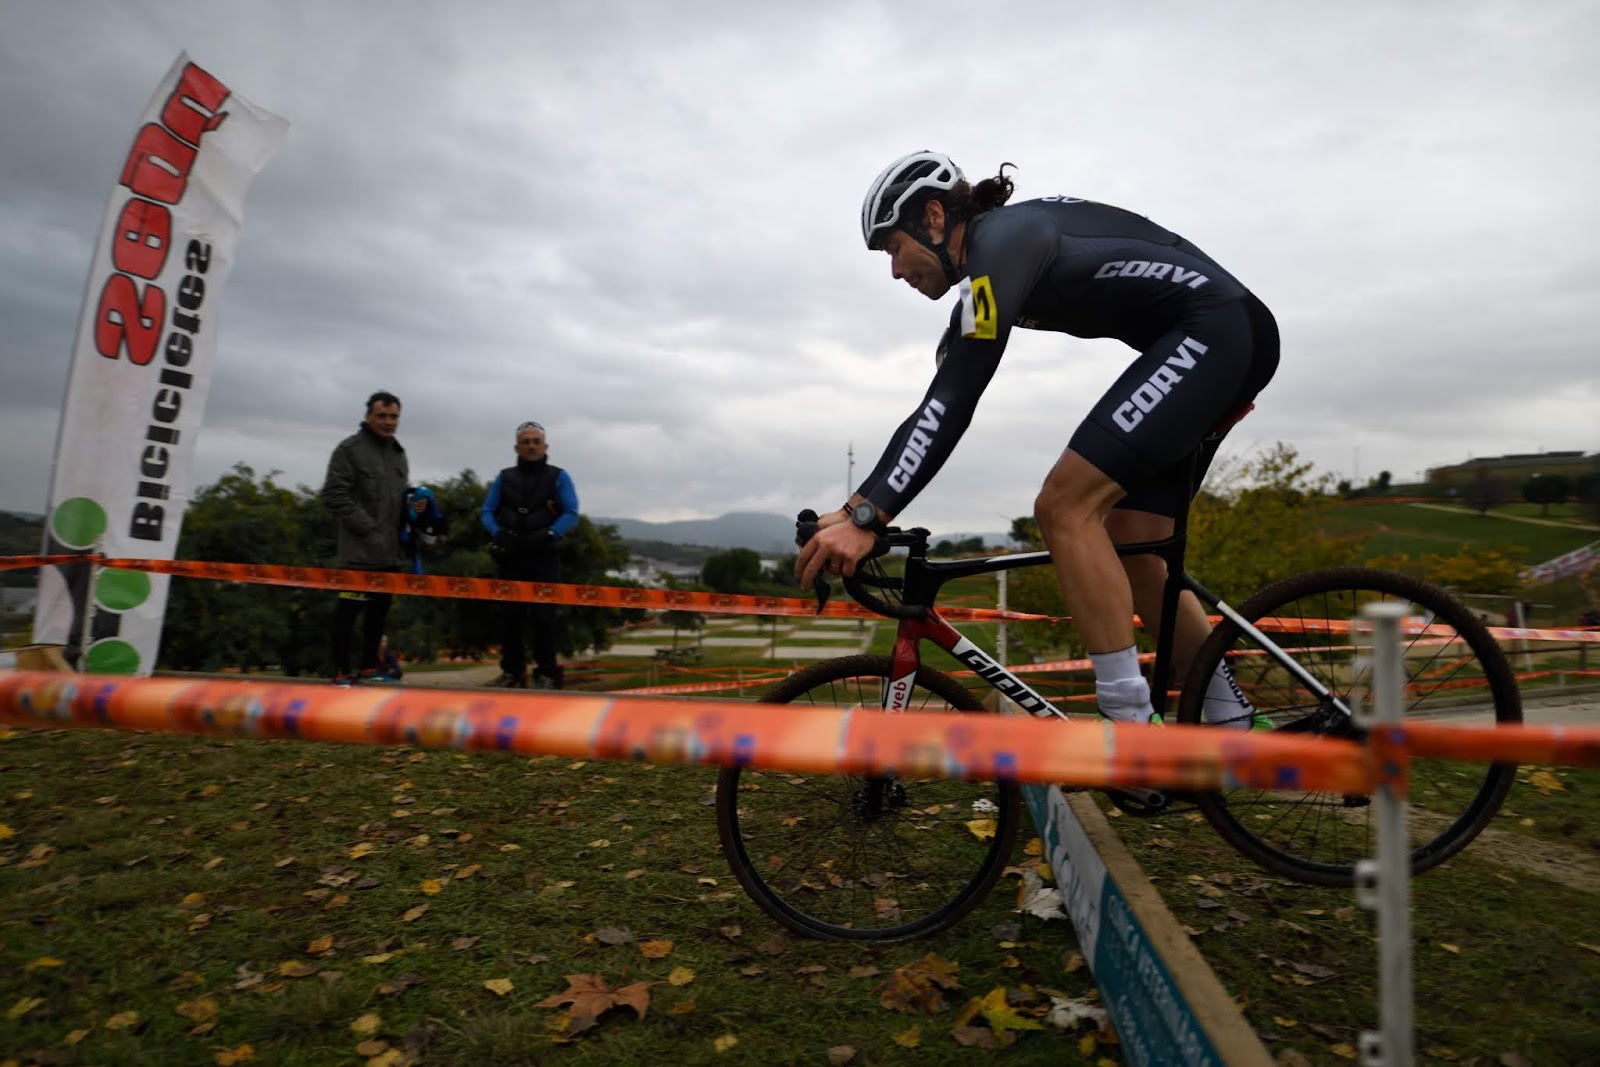 Cycle Racing Events